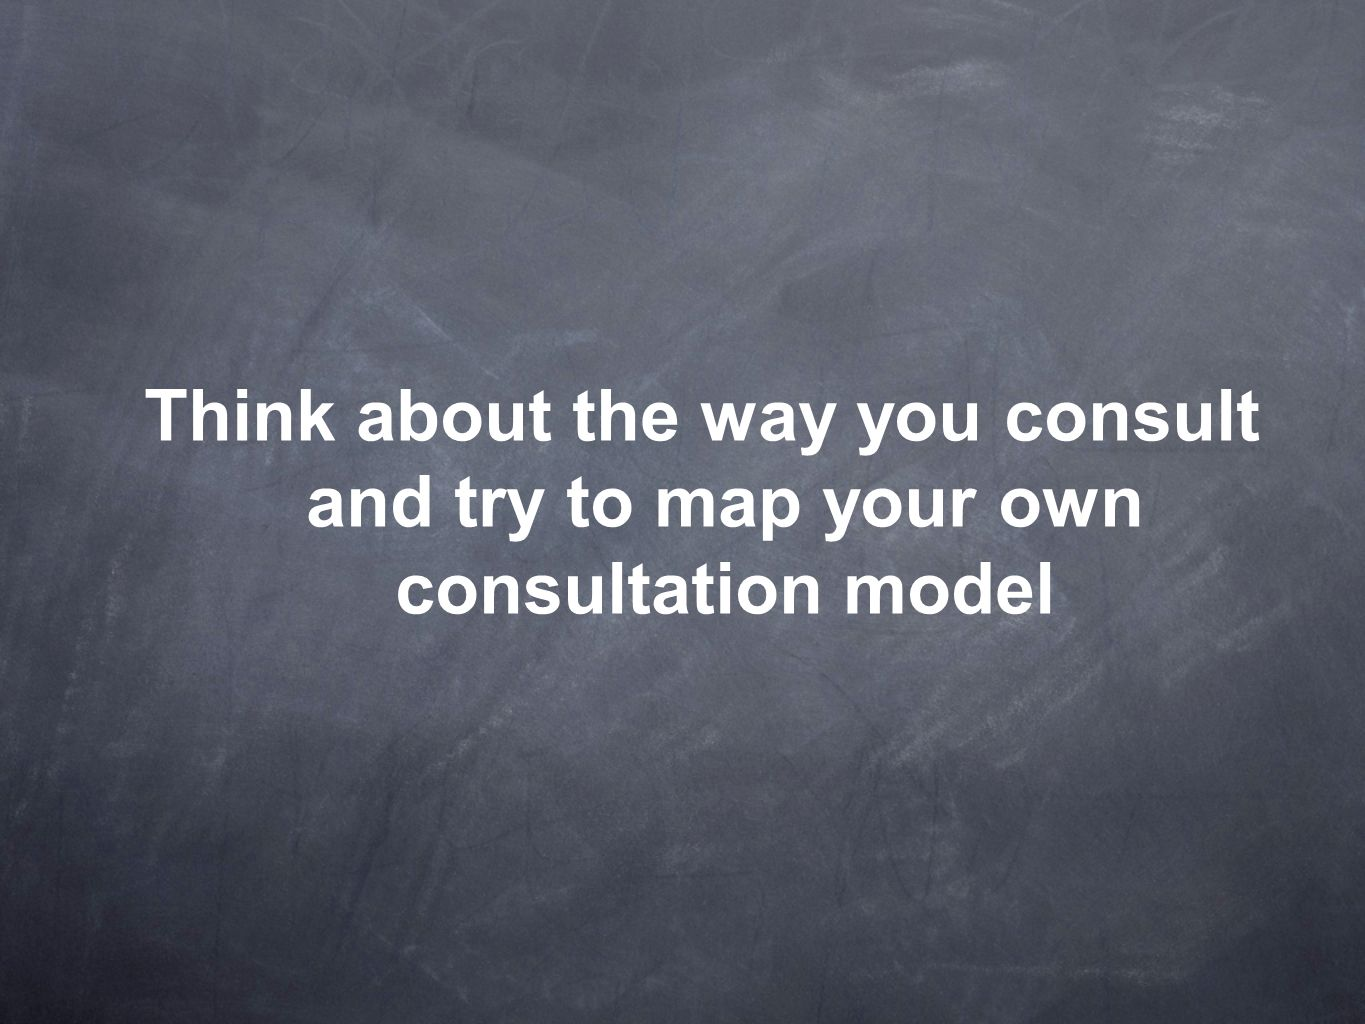 Think about the way you consult and try to map your own consultation model